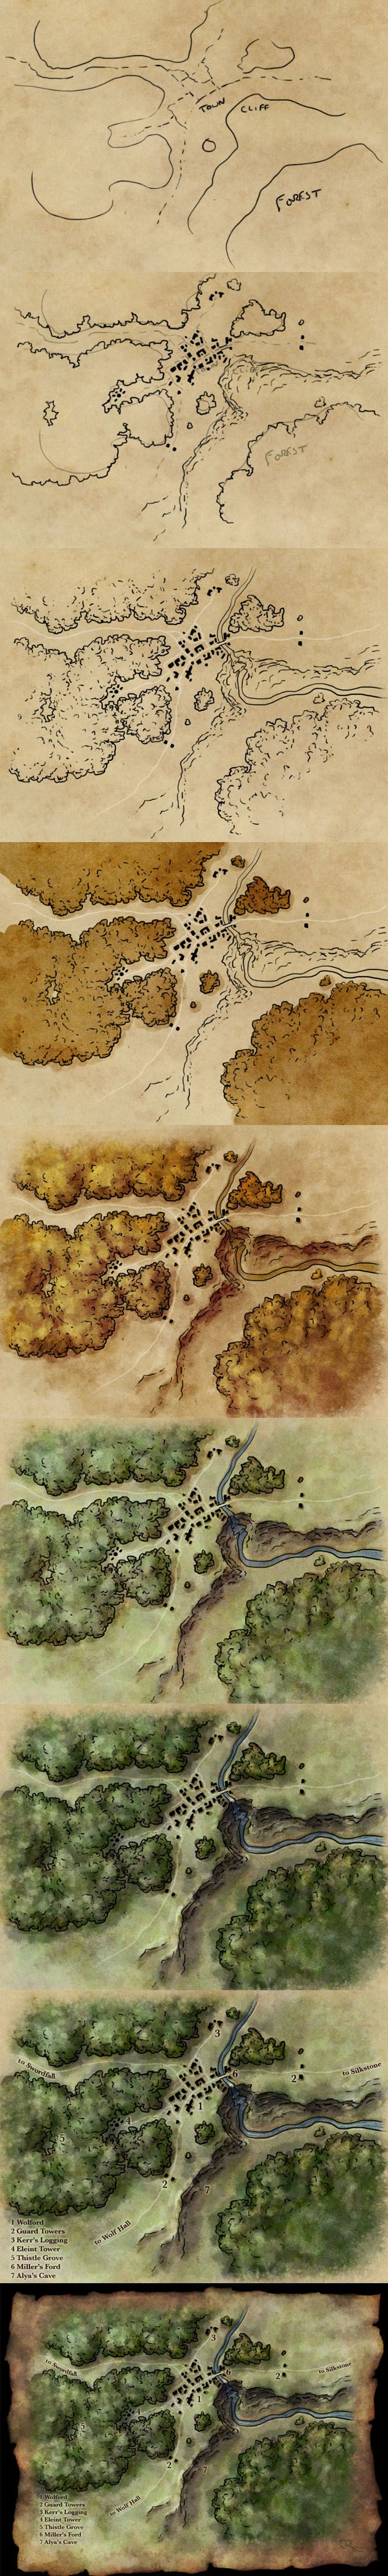 How to draw a map tutorial: http://www.fantasticmaps.com/2015/02/how-to-draw-a-map/  Here's all the stages of a map in one go: • sketch • inked outlines • detail lines • basic tones • light and shade • colour • detail light and shade • labeling • polish